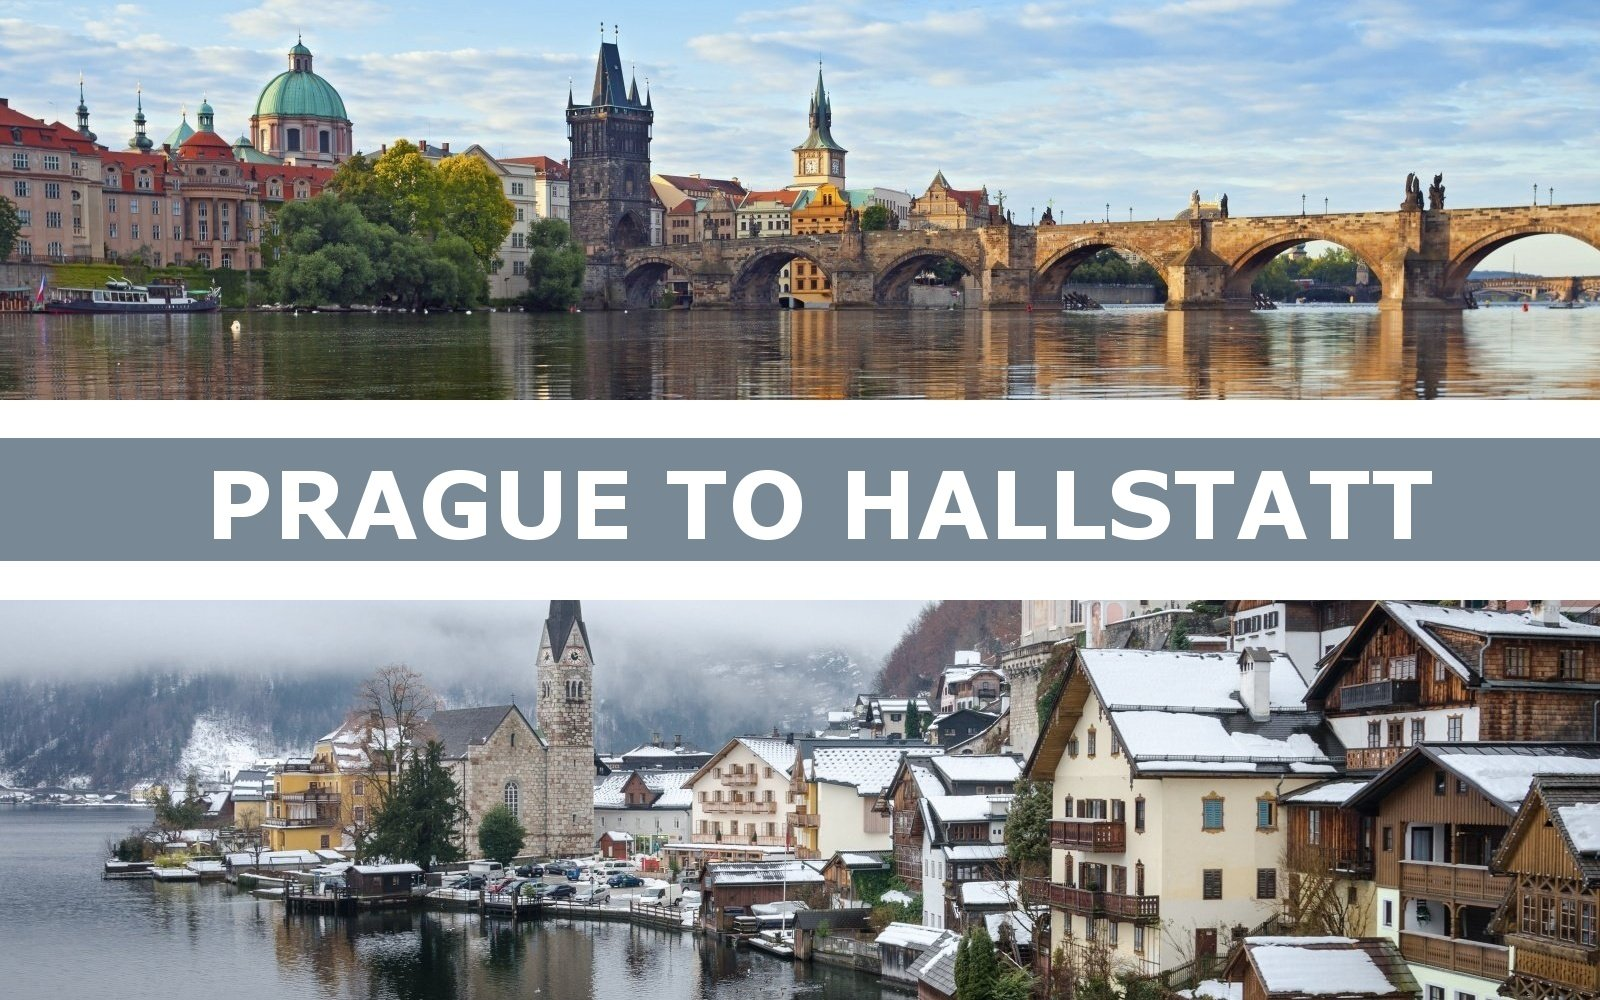 Transportation from Prague to Hallstatt